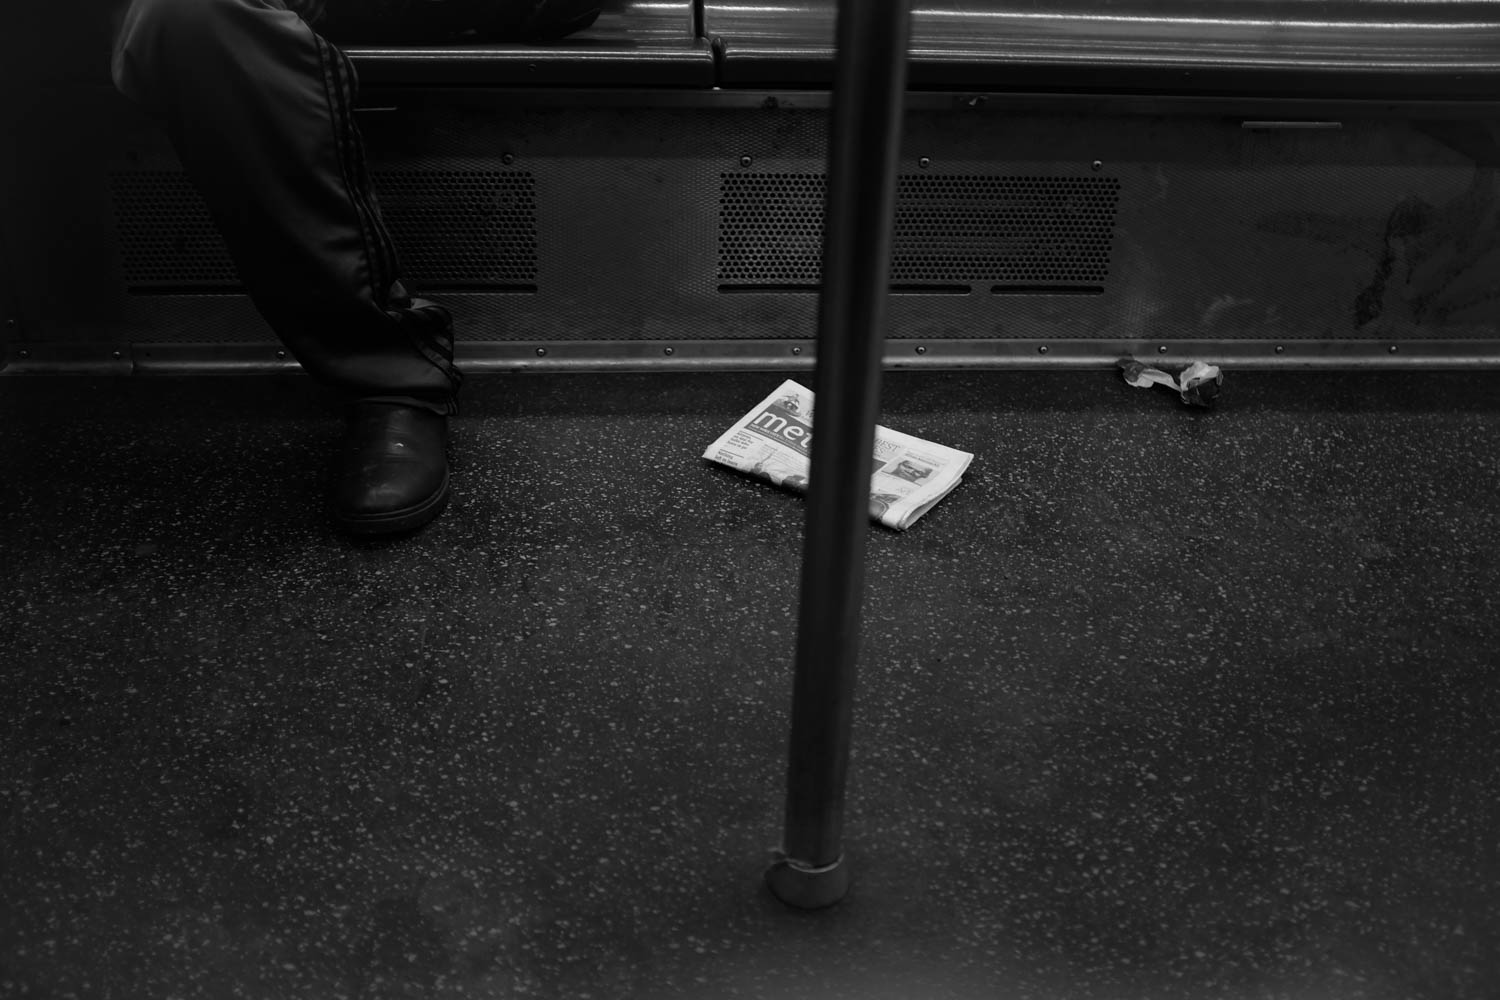 A black and white photograph of a newspaper on the floor of a subway car.